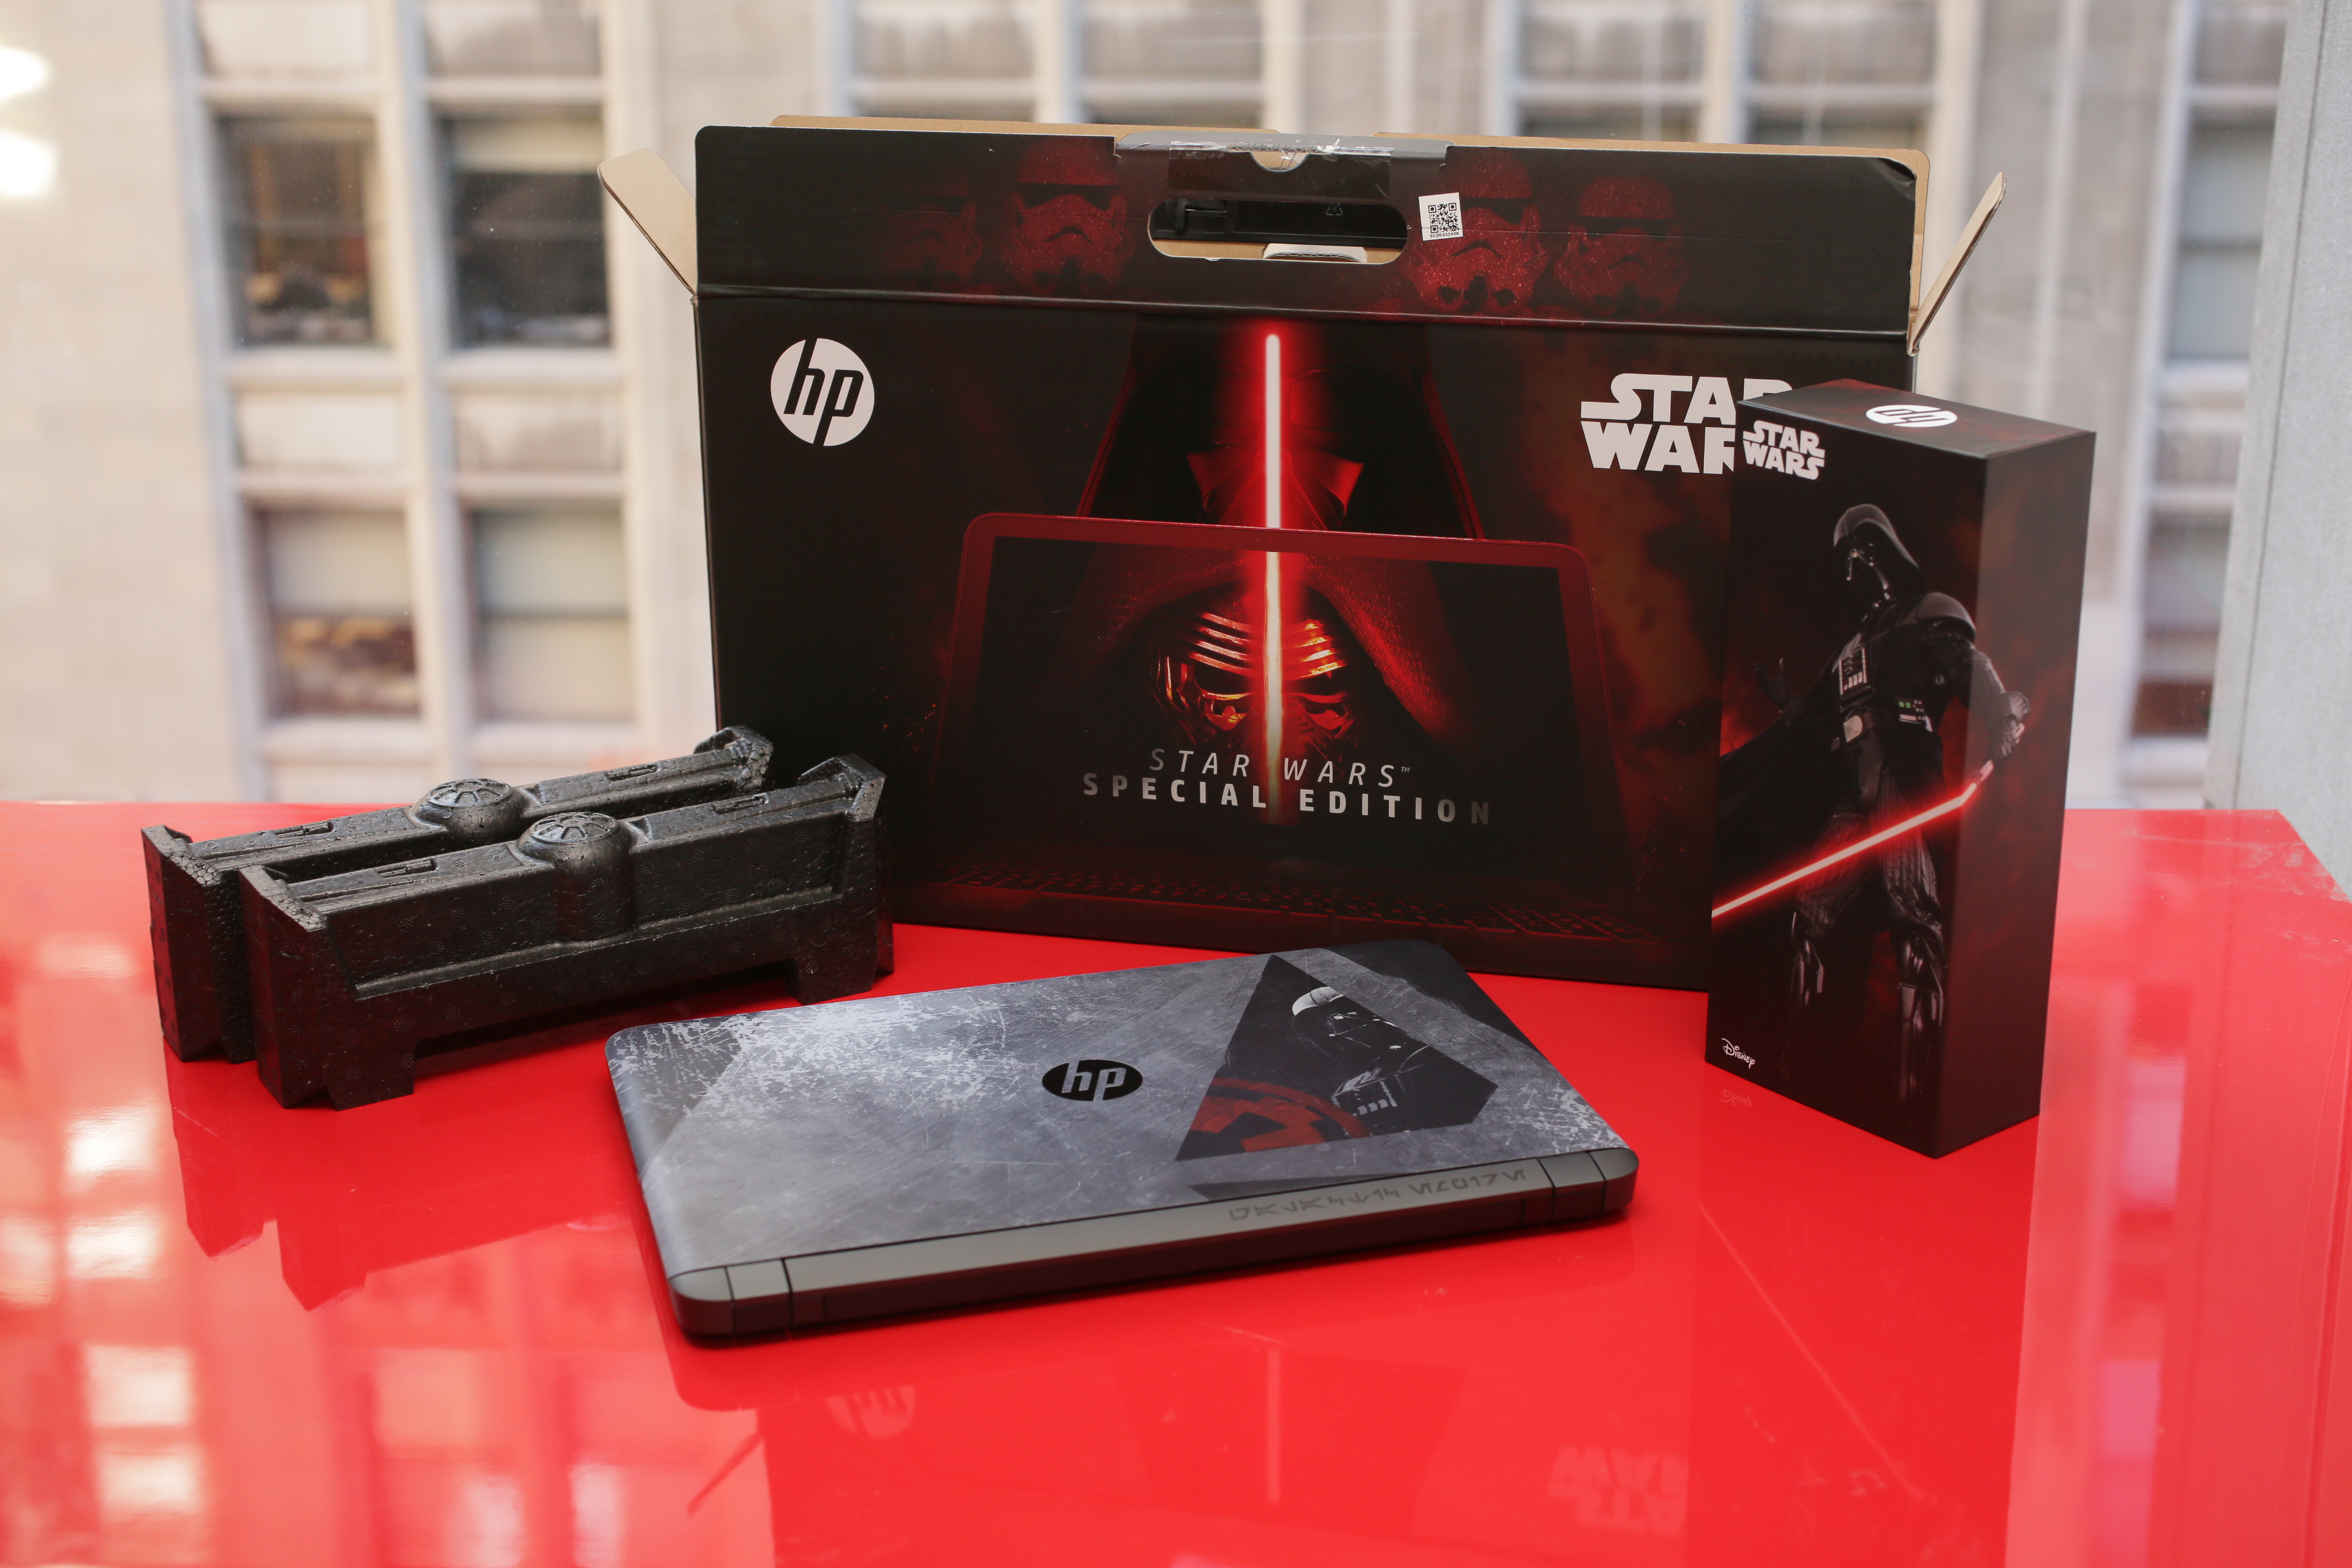 hp-star-wars-laptop-05.jpg